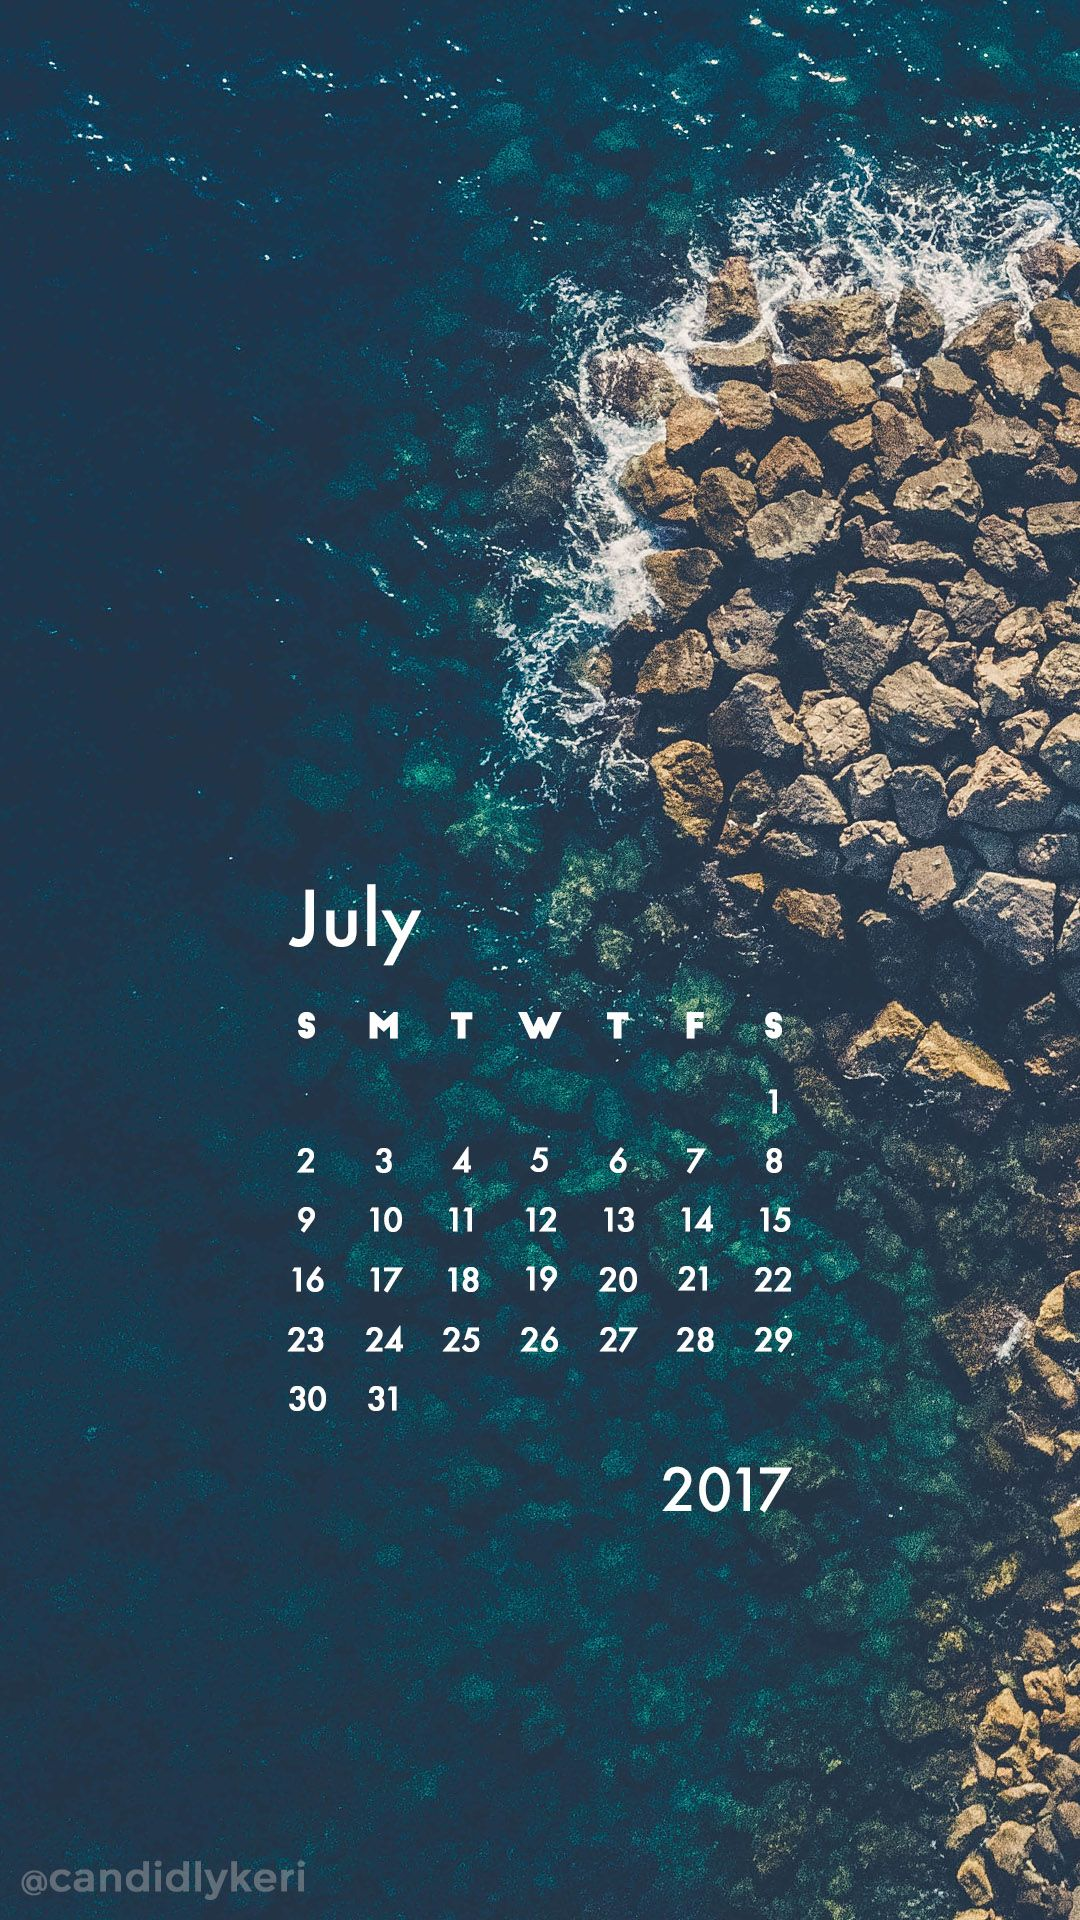 Wallpaper download of 2017 - Ocean Waves Crashing Rocks Summer July Calendar 2017 Wallpaper You Can Download For Free On The